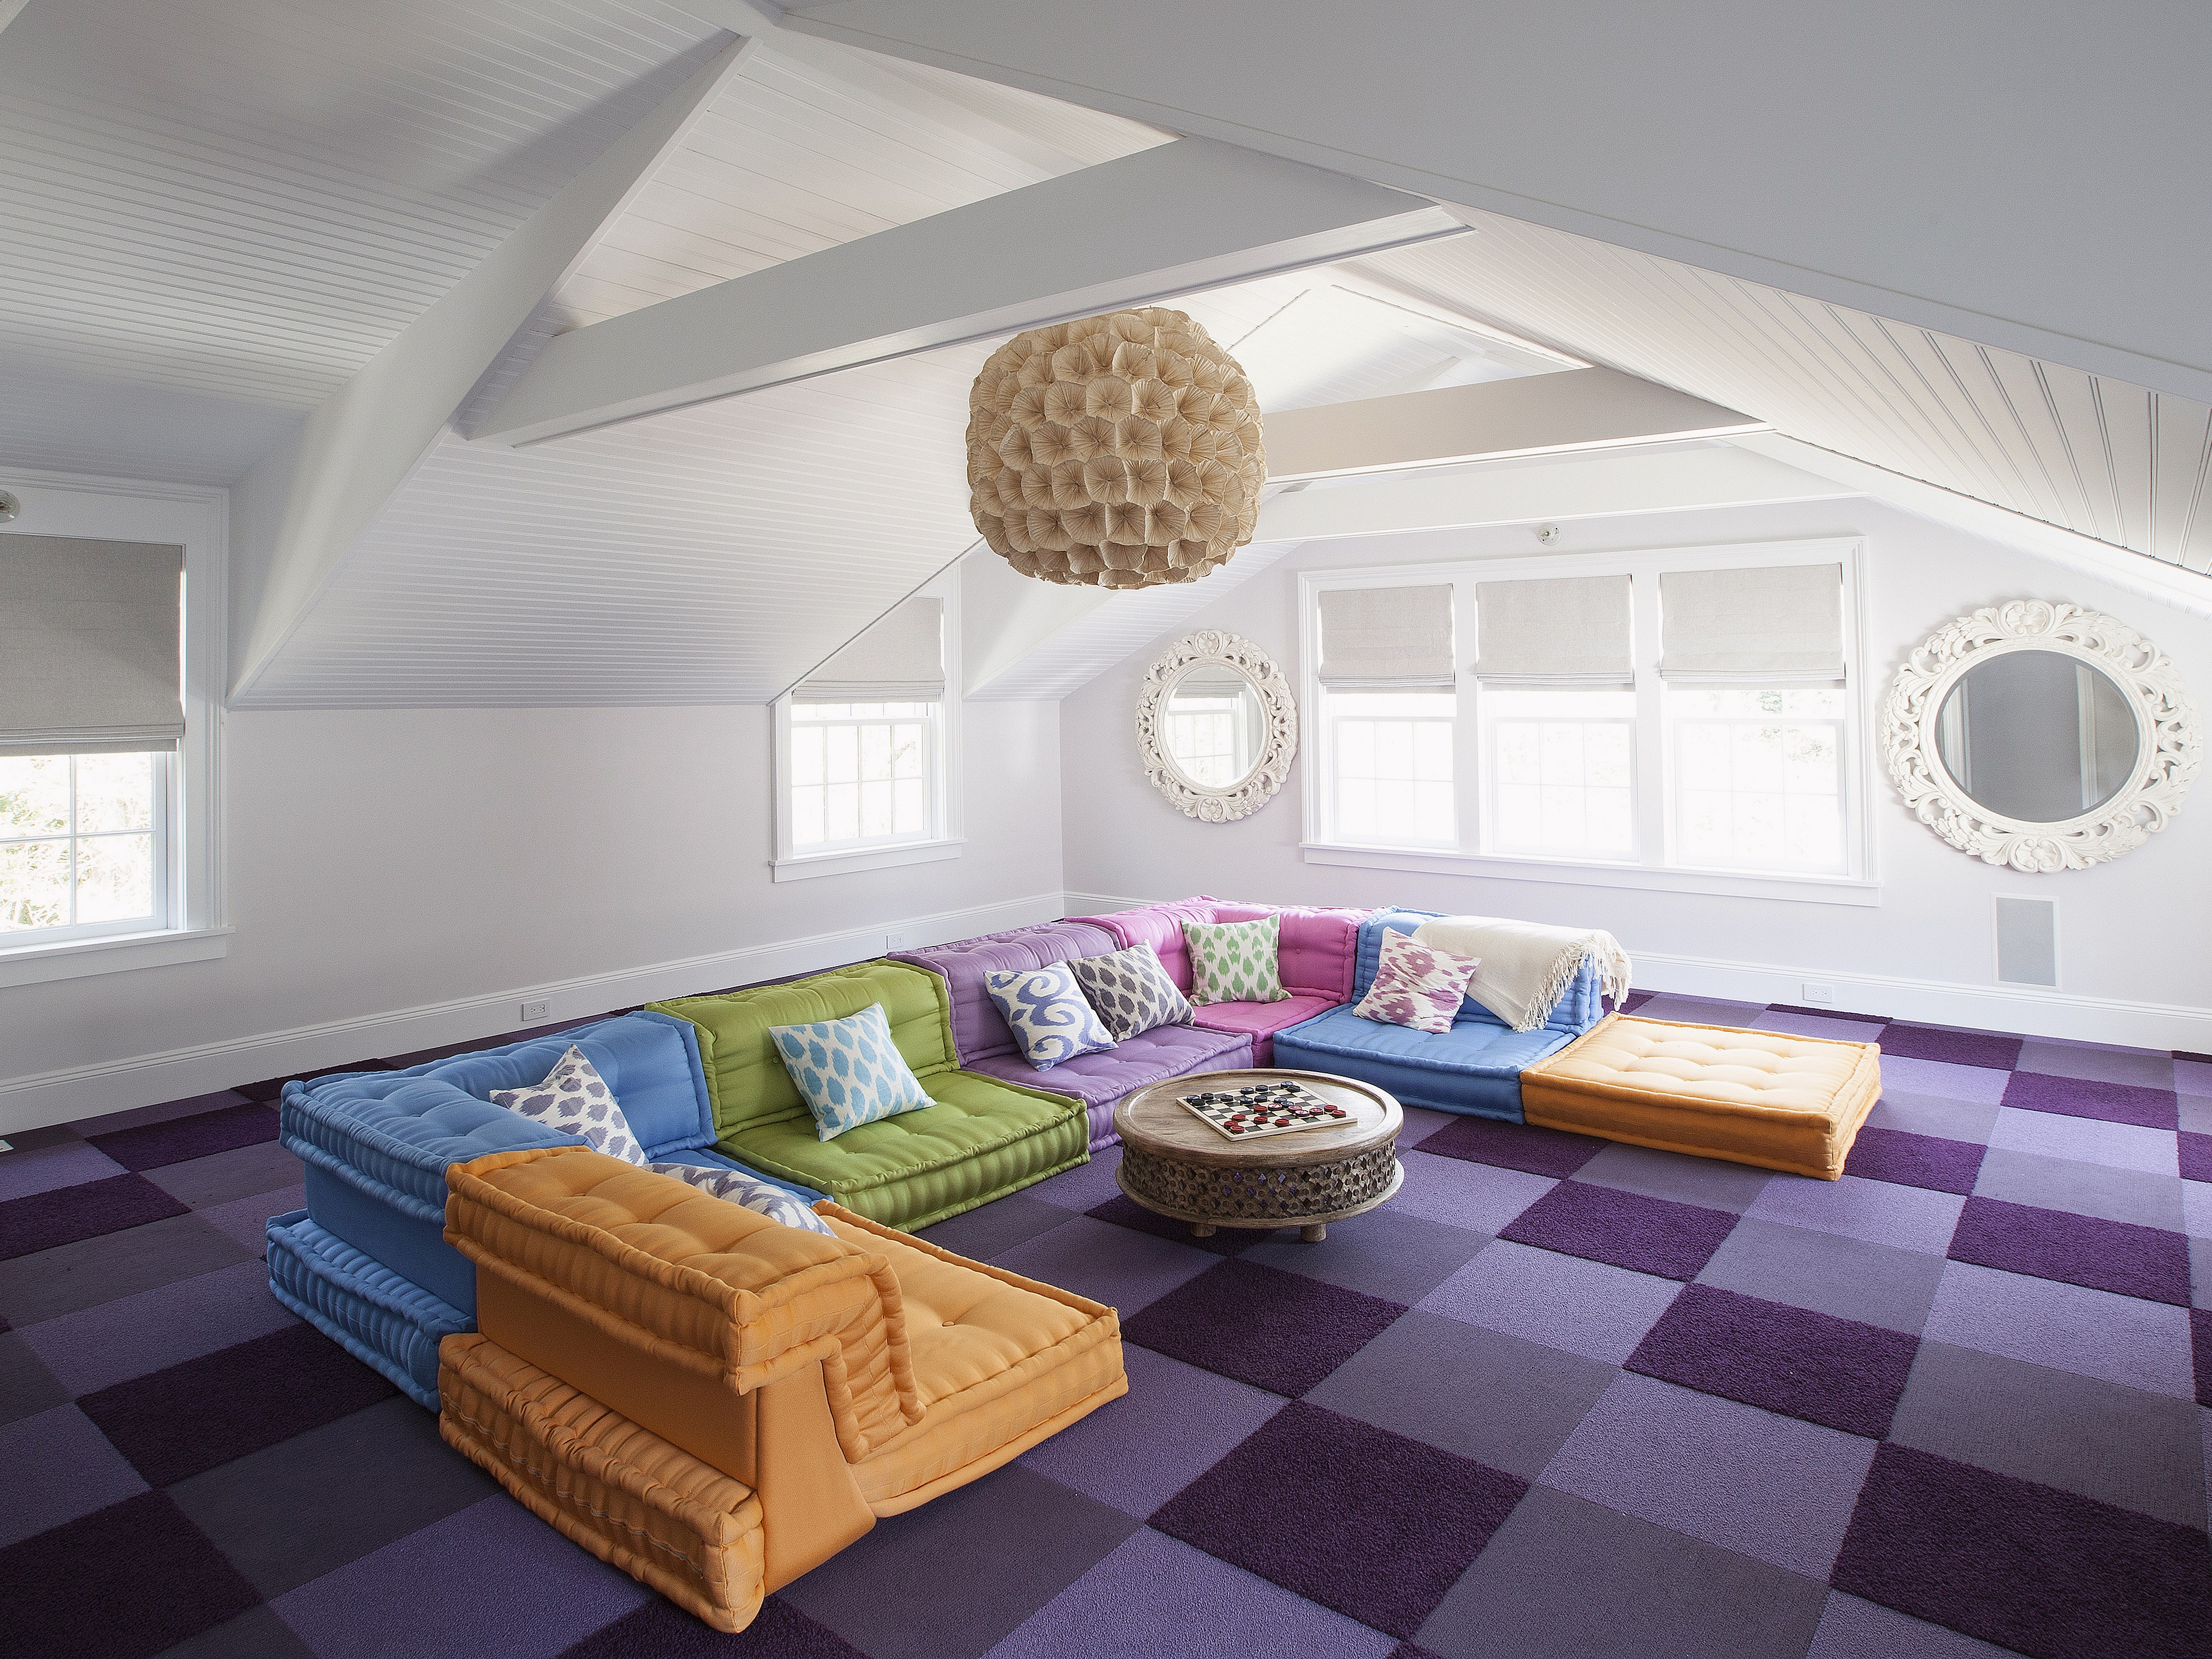 2017 Contemporary Attic Living Room Remodel To Colorful Theme (Image 2 of 26)